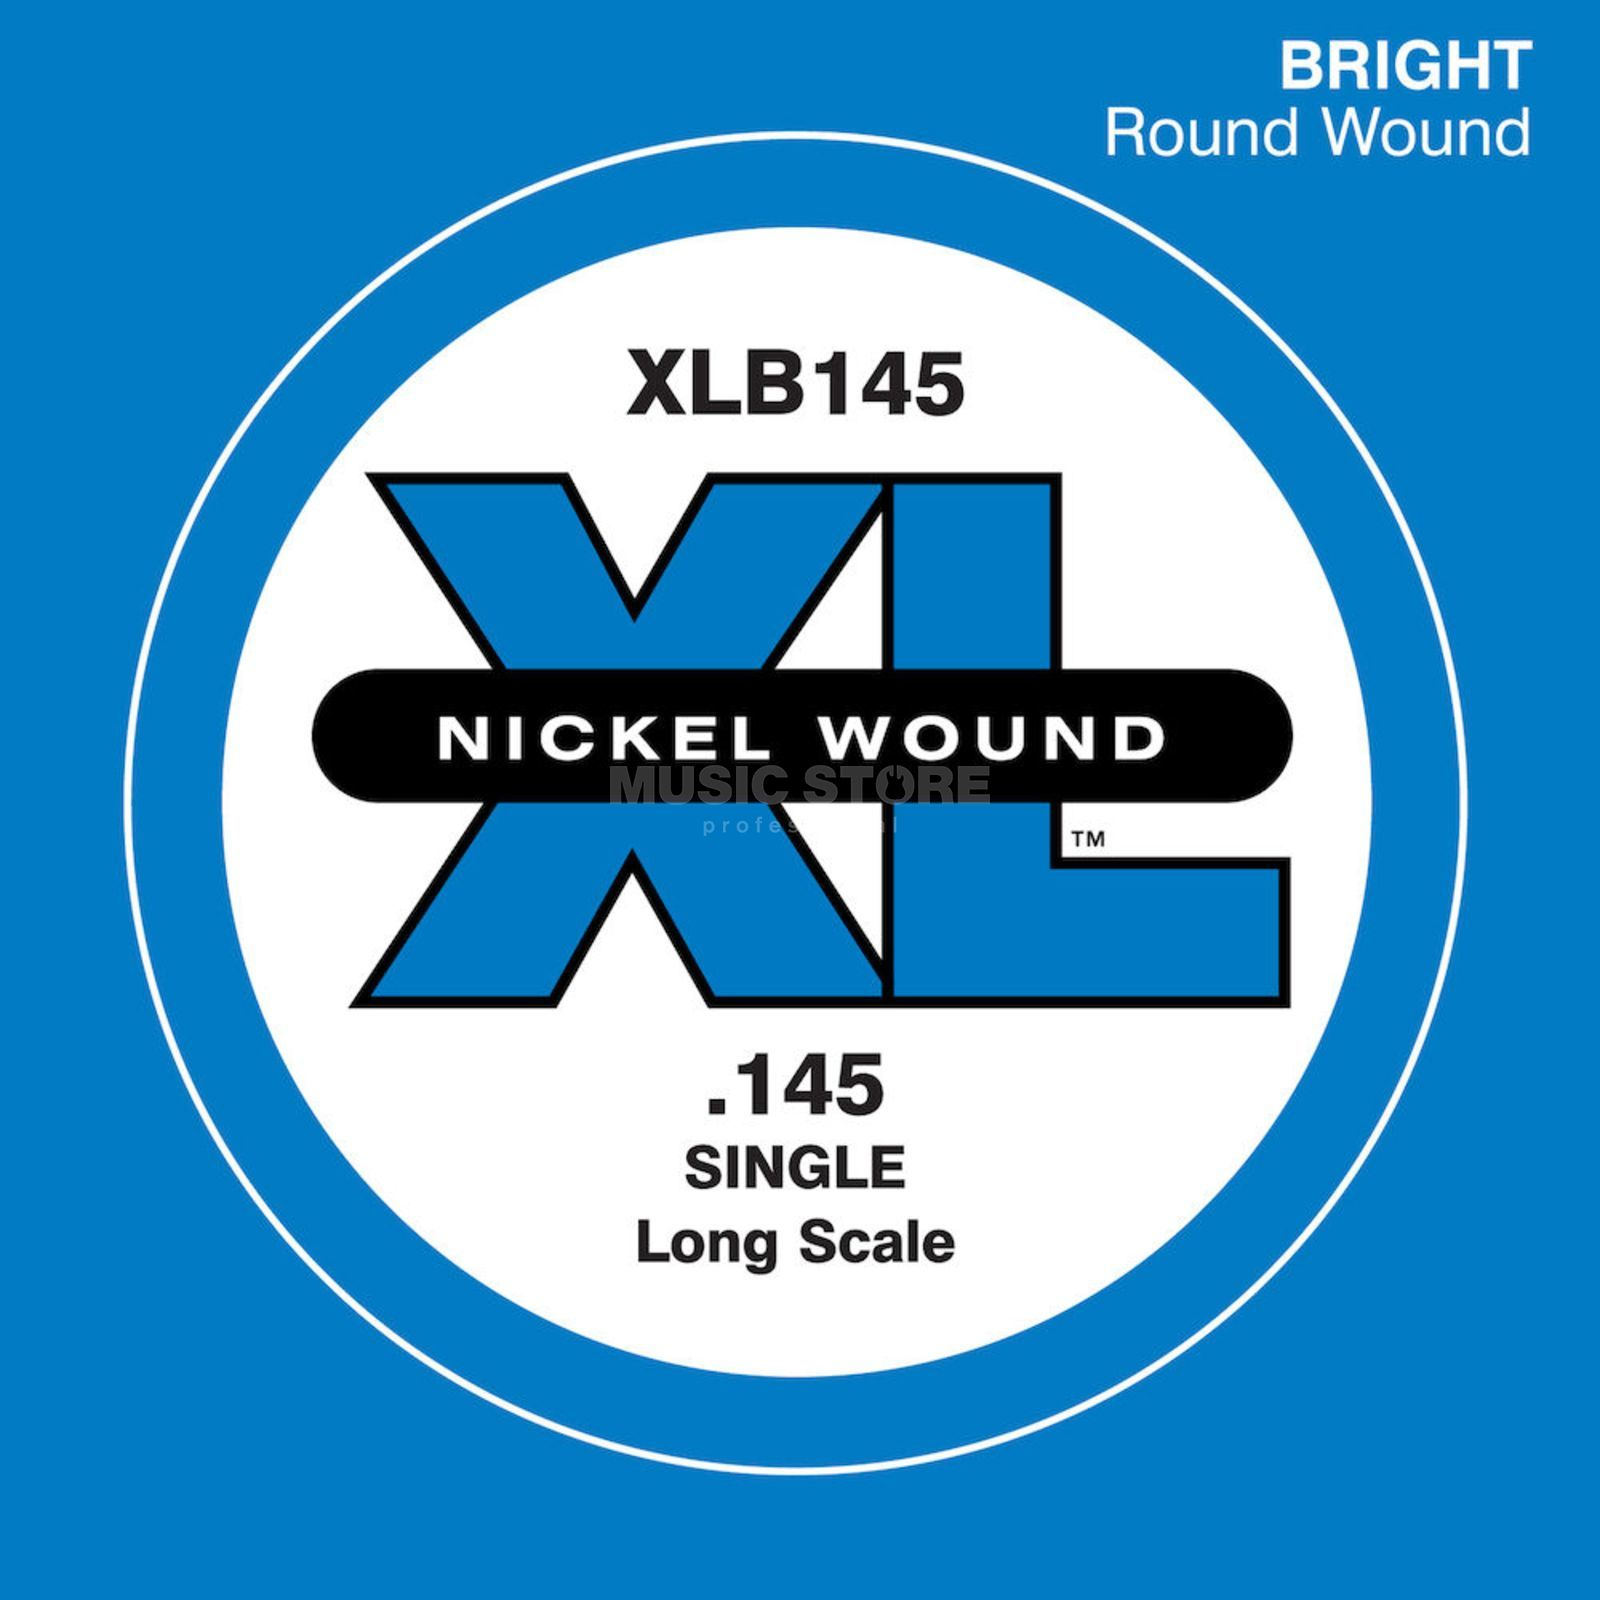 D'Addario XLB145 Bass String Round Wound .145 (Single) Изображение товара